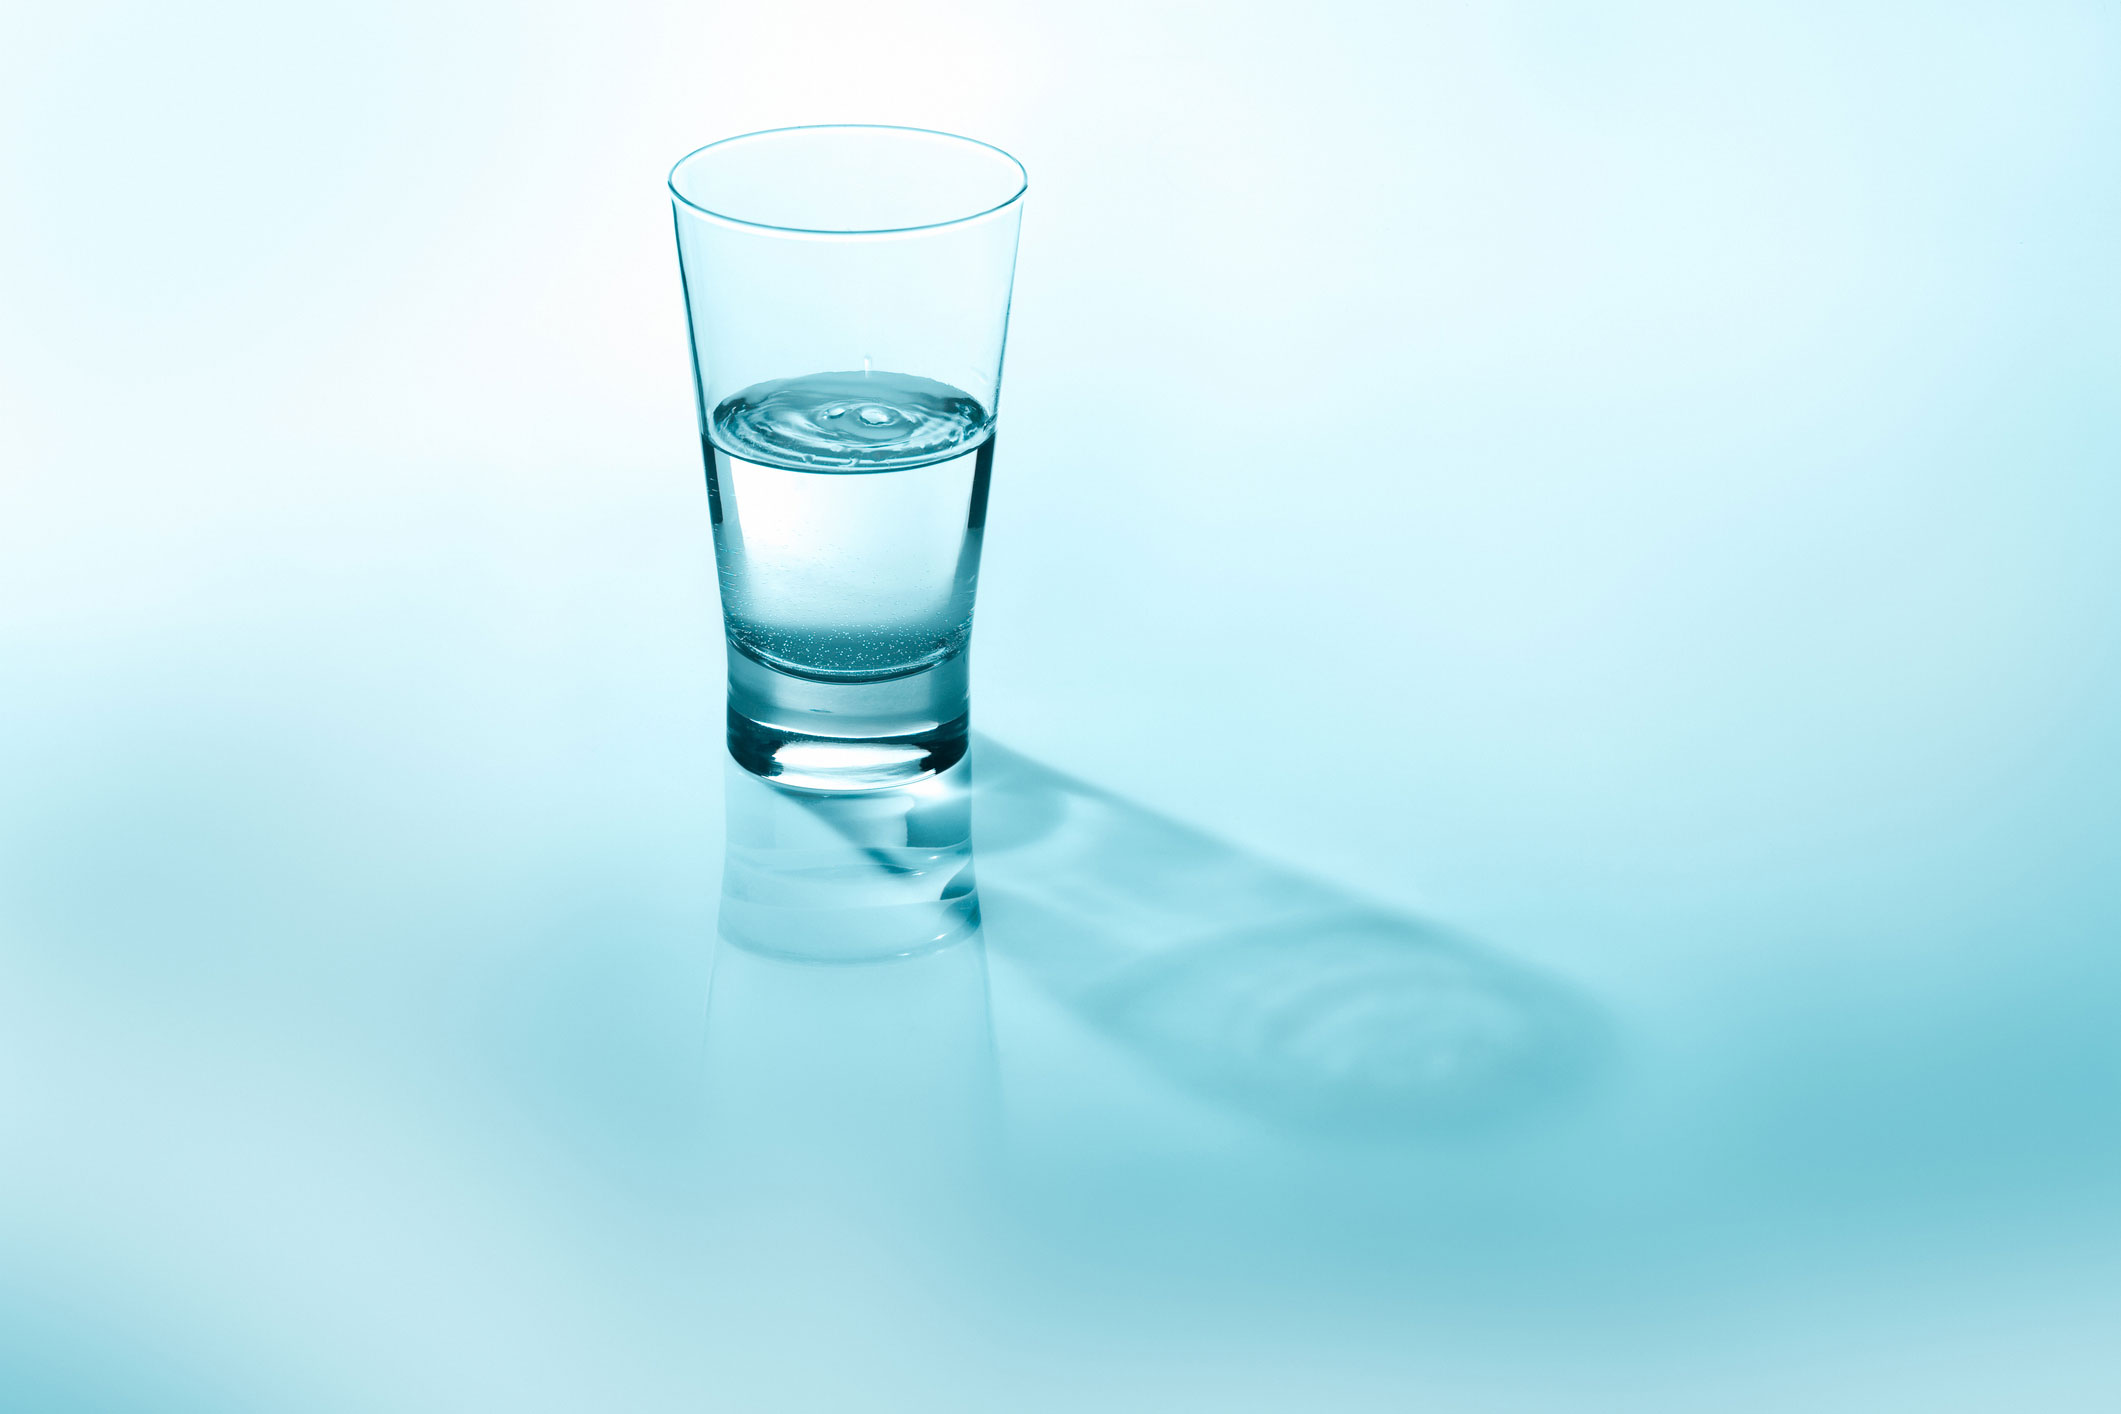 Glass of water, half full, against a light blue background.